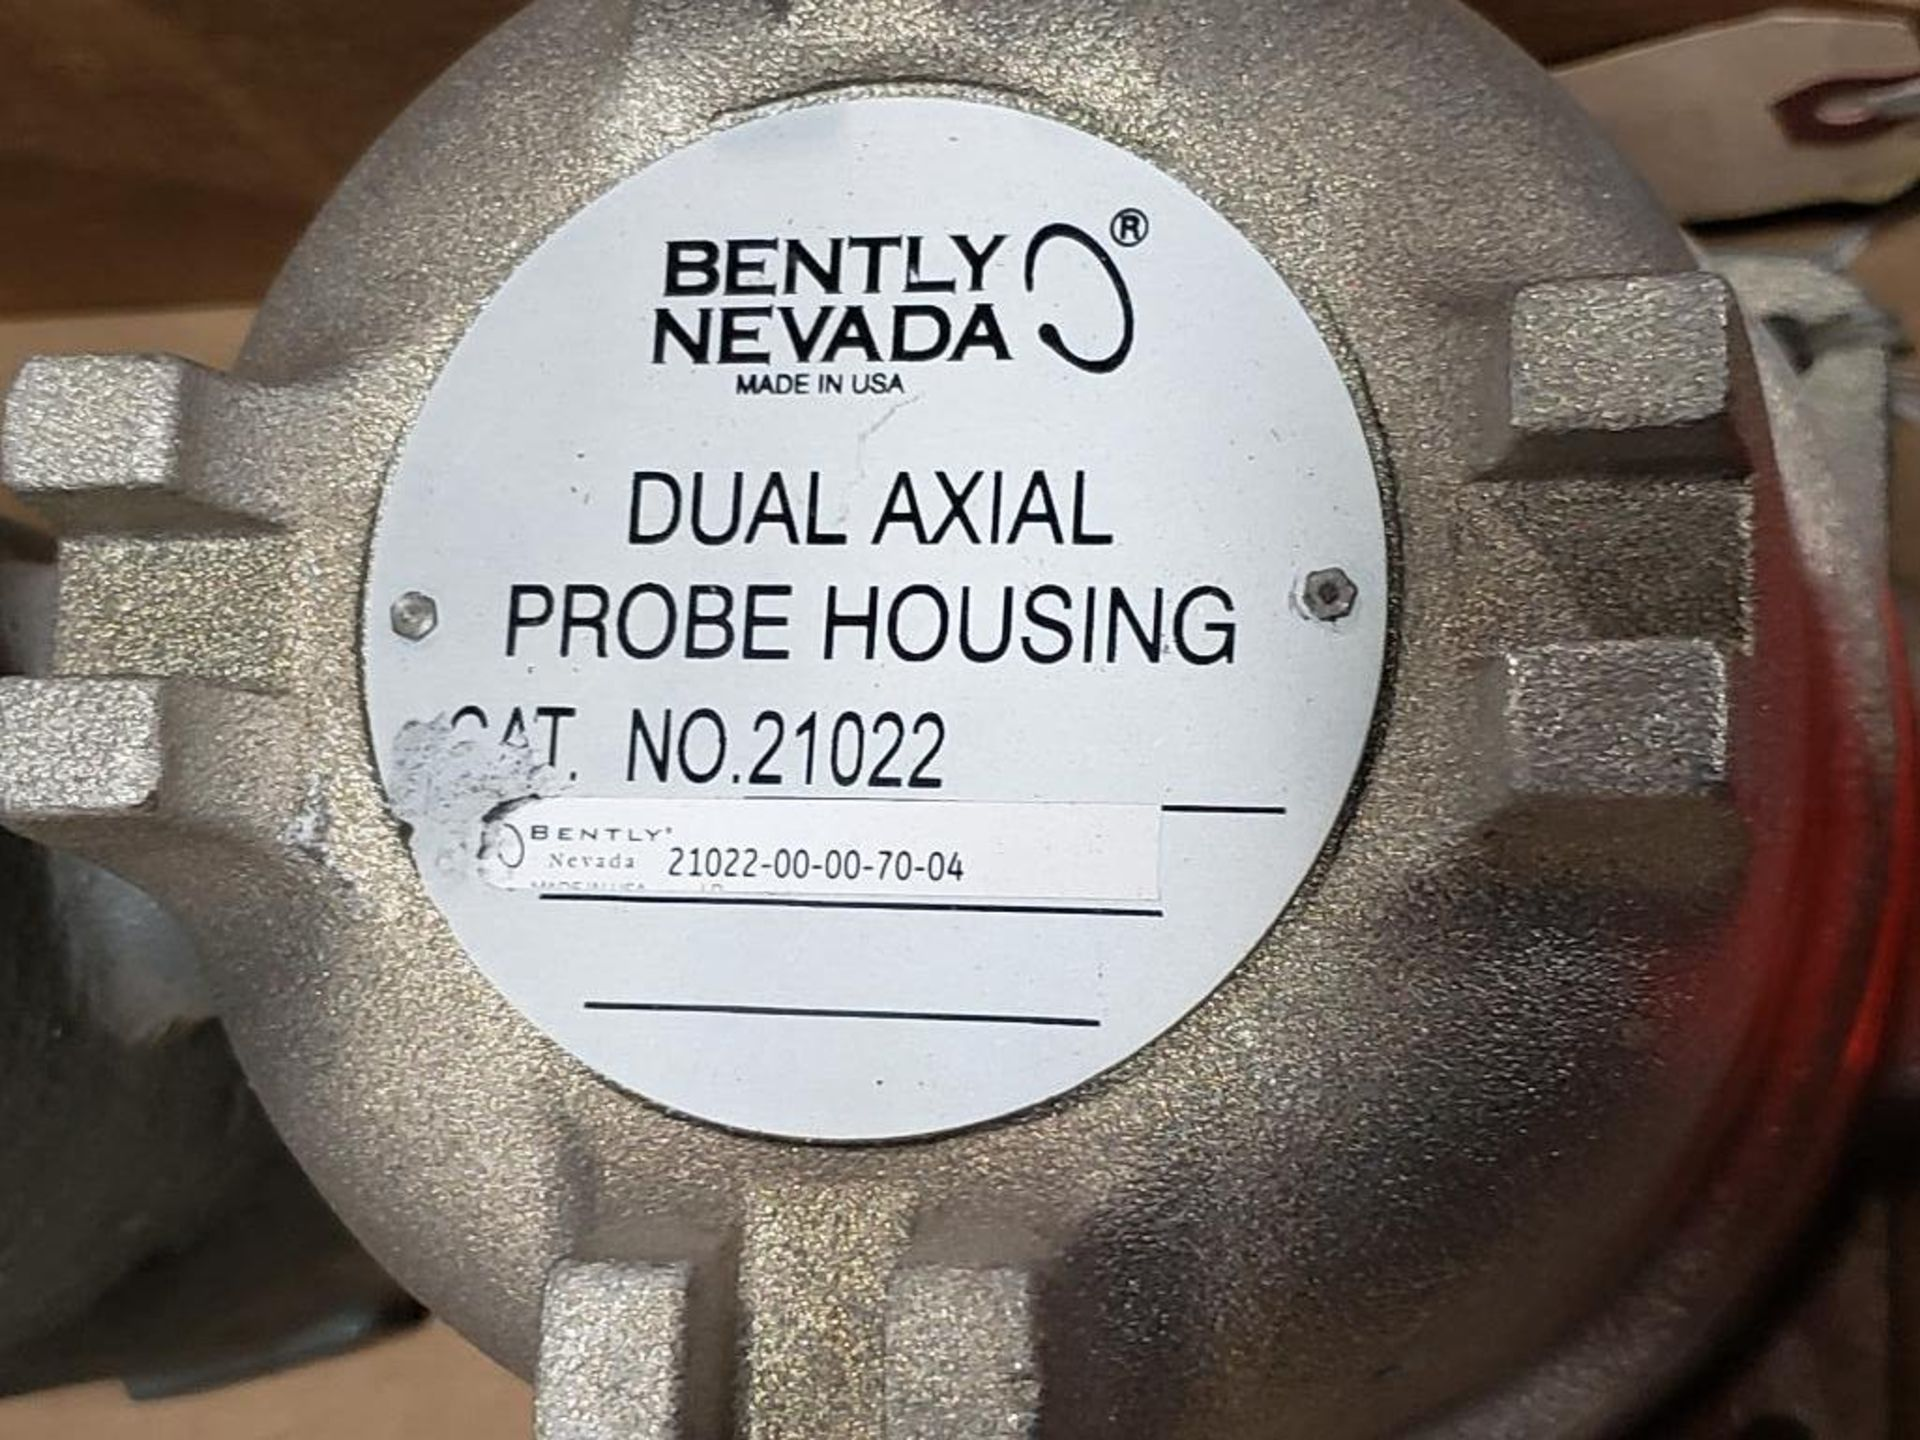 Bently Nevada Dual axial probe housing 21022-00-70-04. - Image 2 of 8